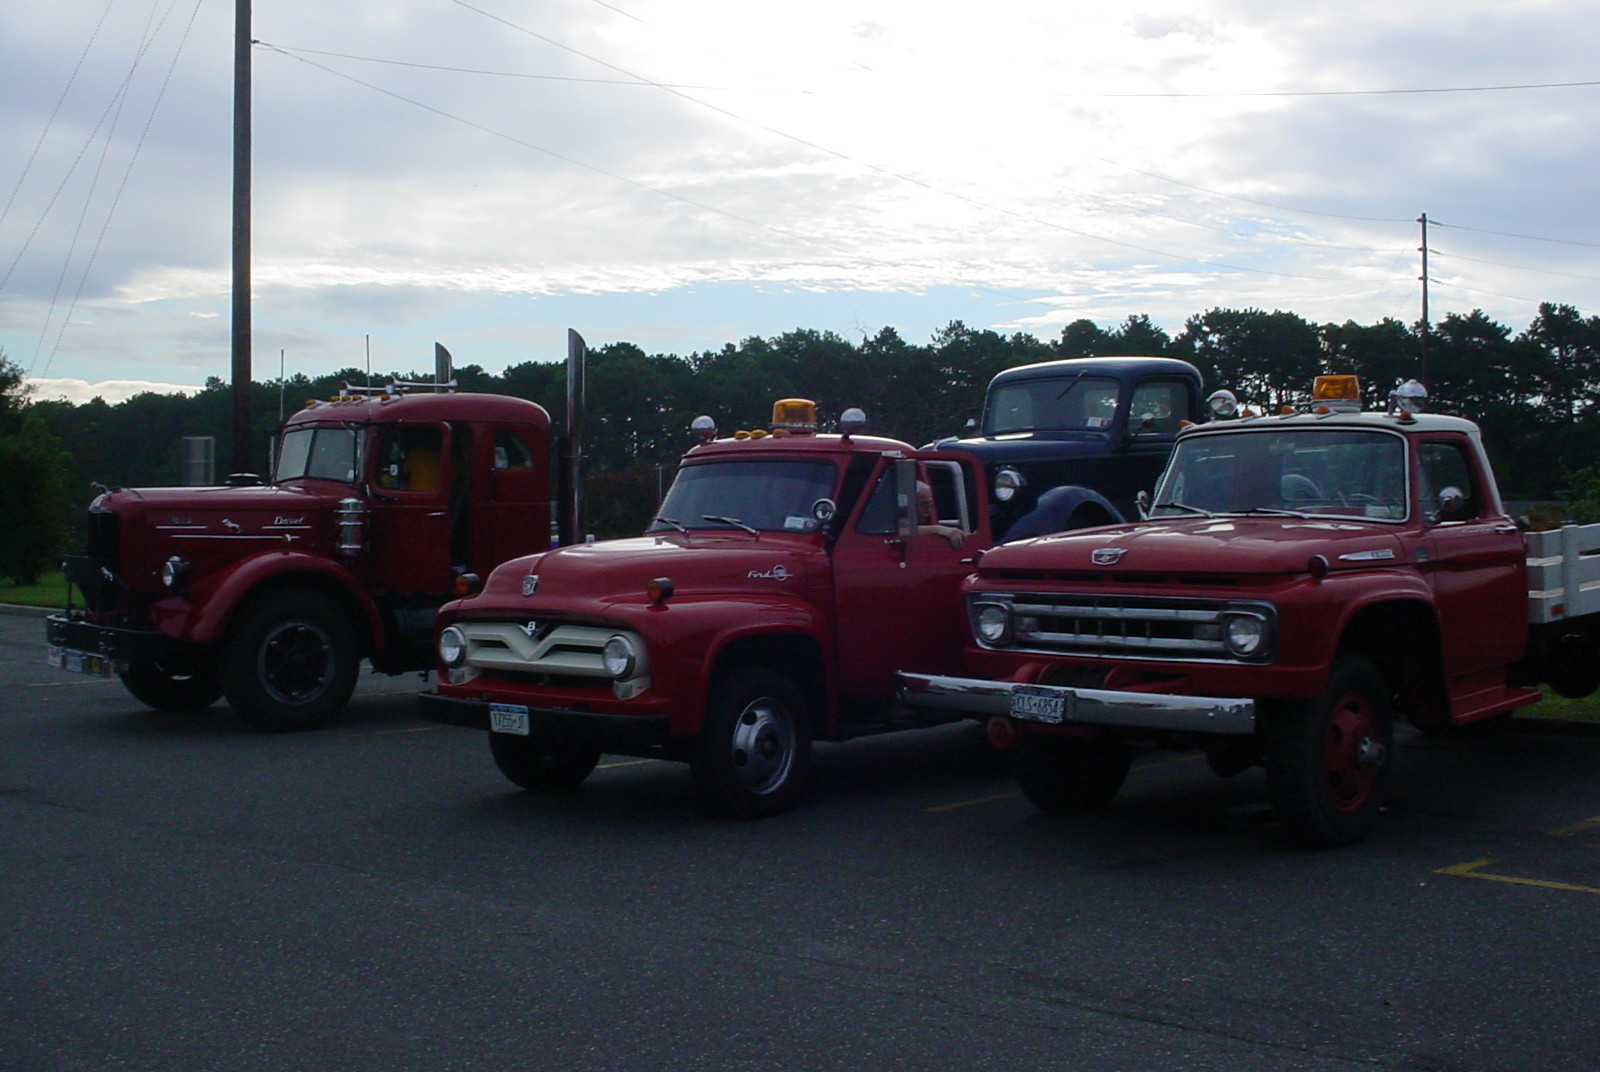 Member's trucks lined up at the start of the run in Bohemia